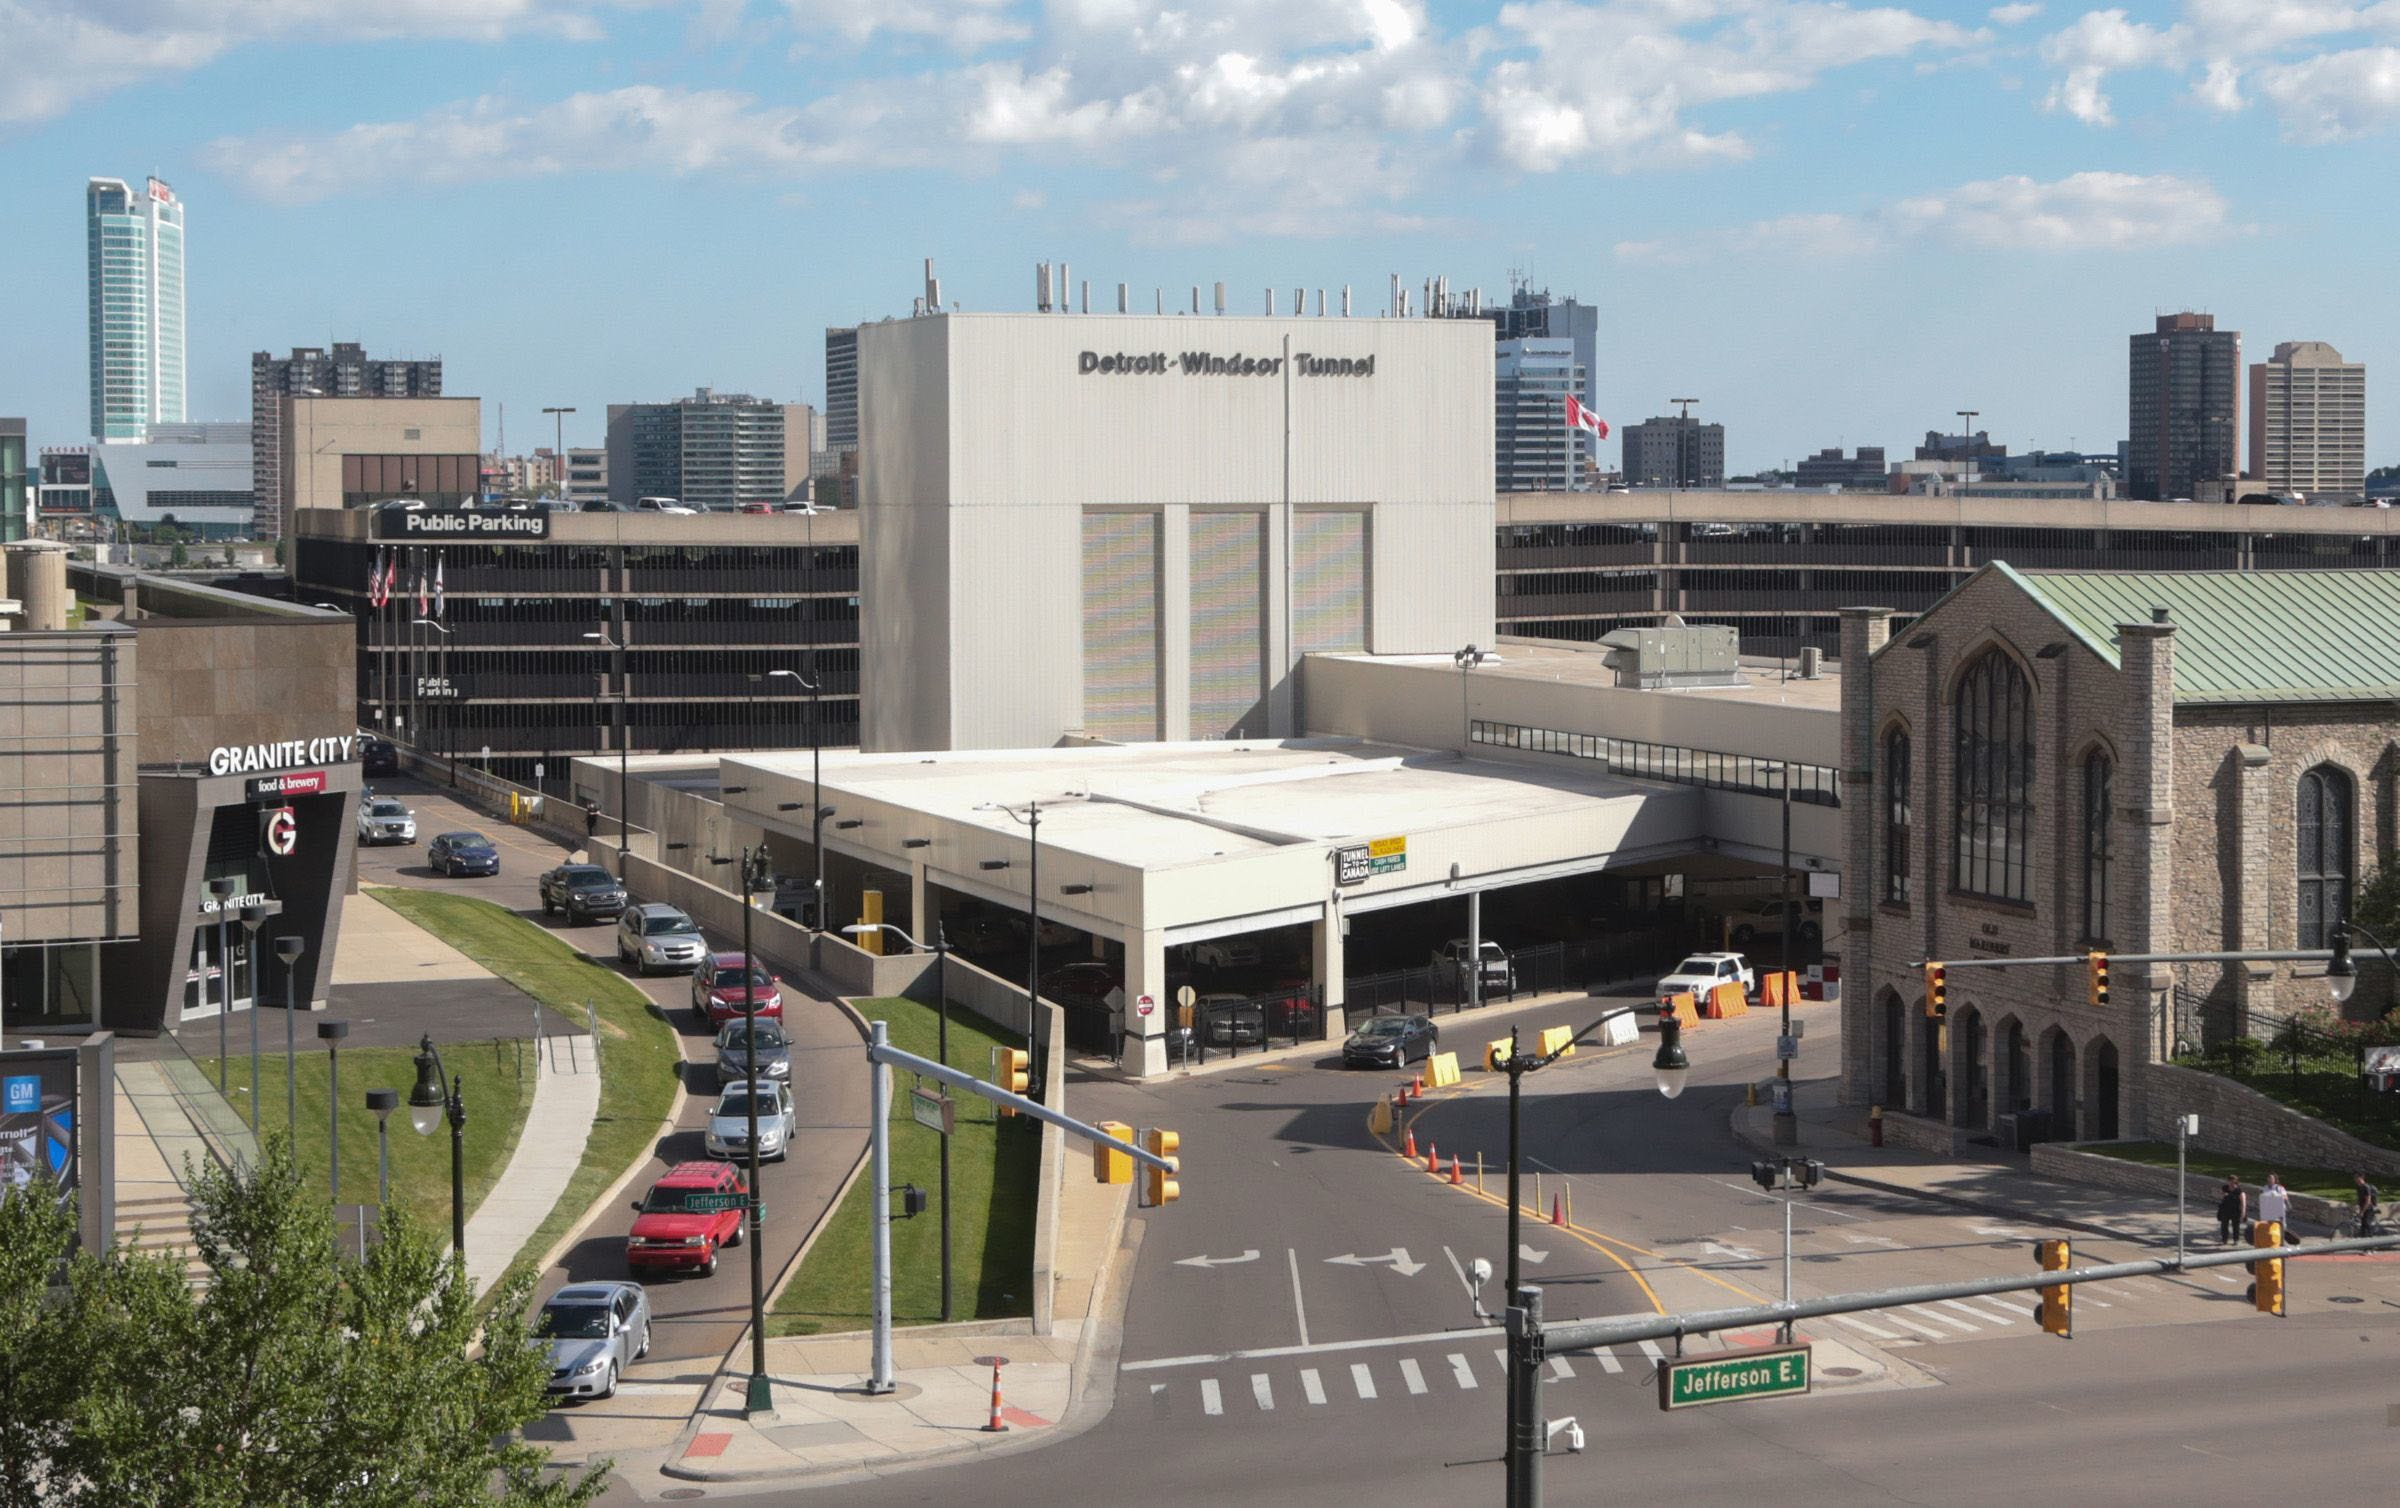 Detroit-Windsor Tunnel to close nightly through June July for renovations